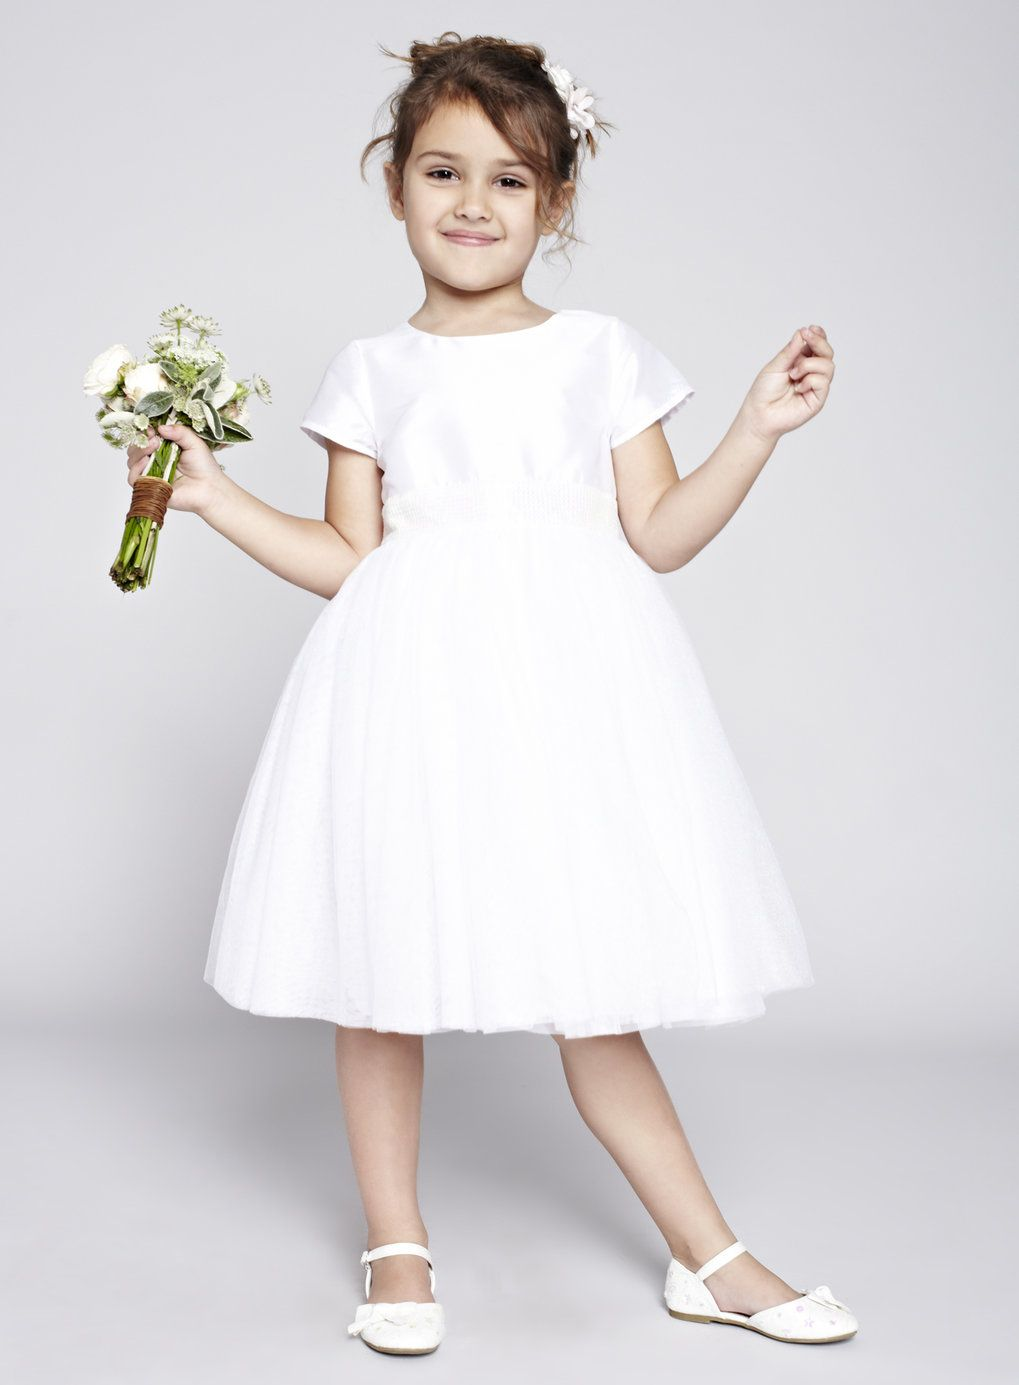 Alexa White Flower Girl Dress - BHS | Wedding ideas | Pinterest ...